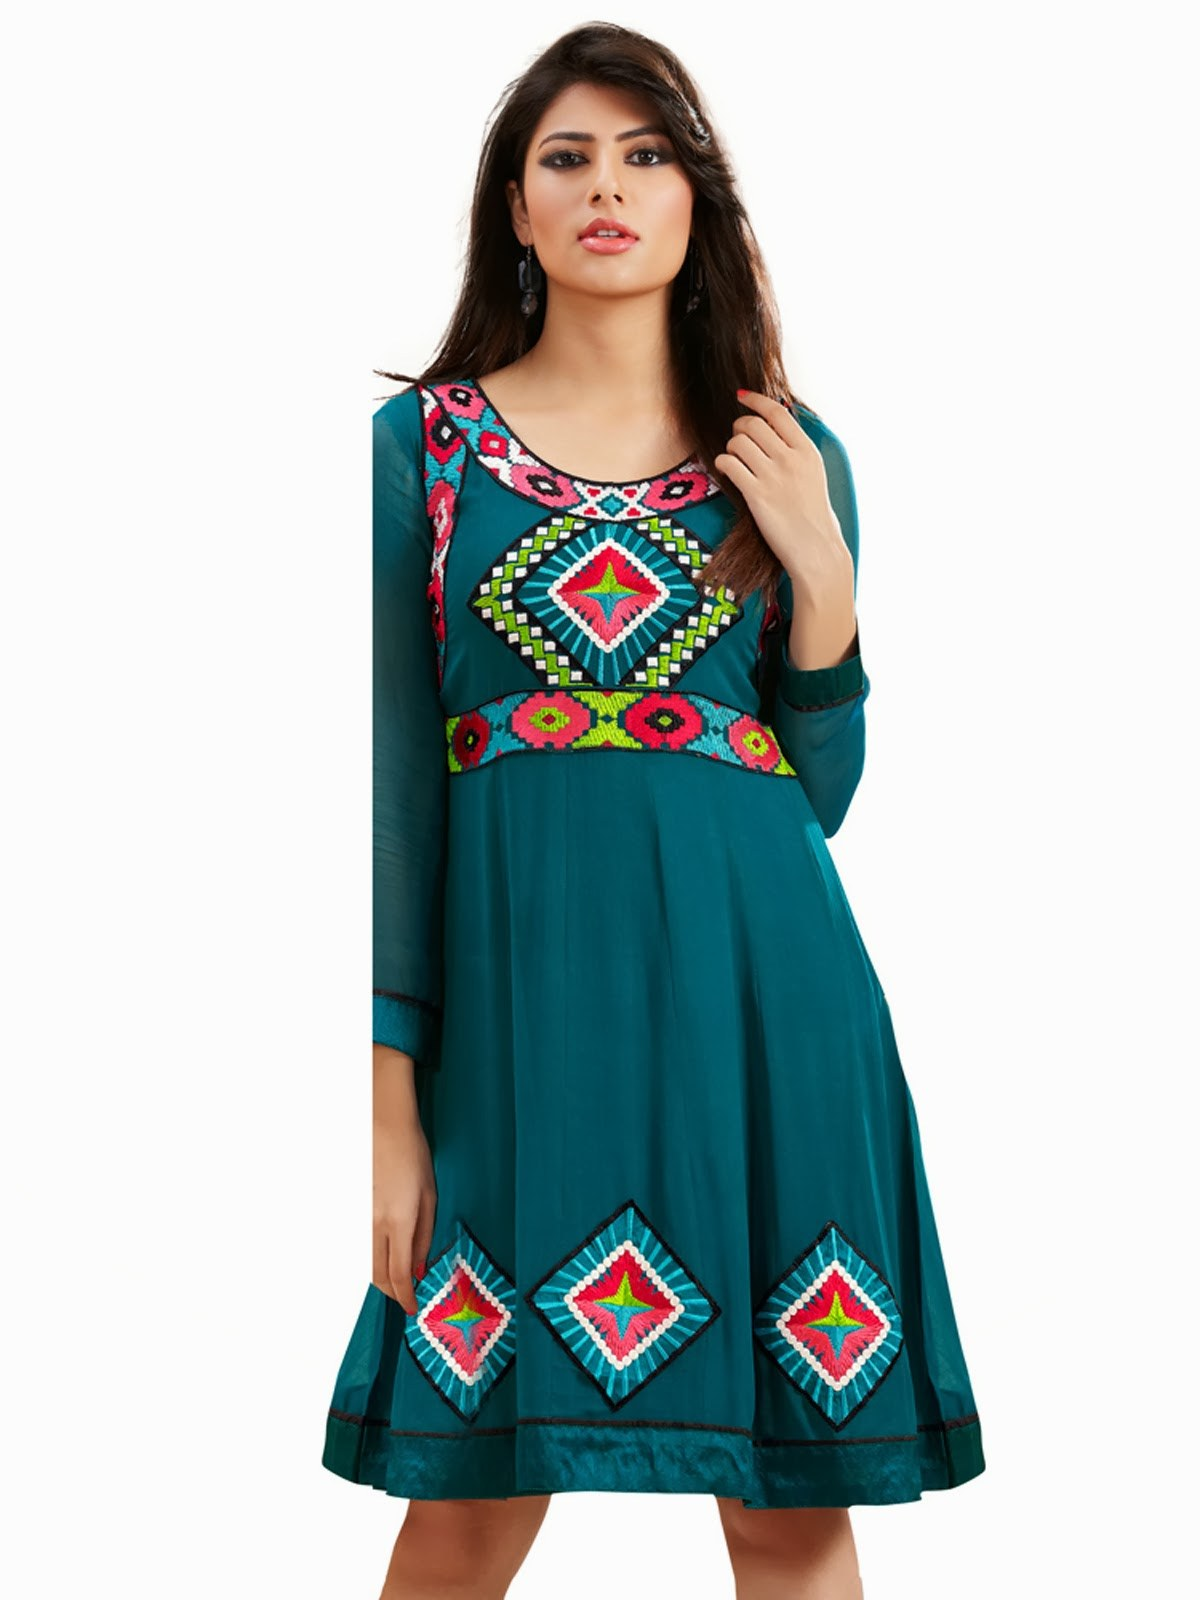 Online shopping kurtis in india